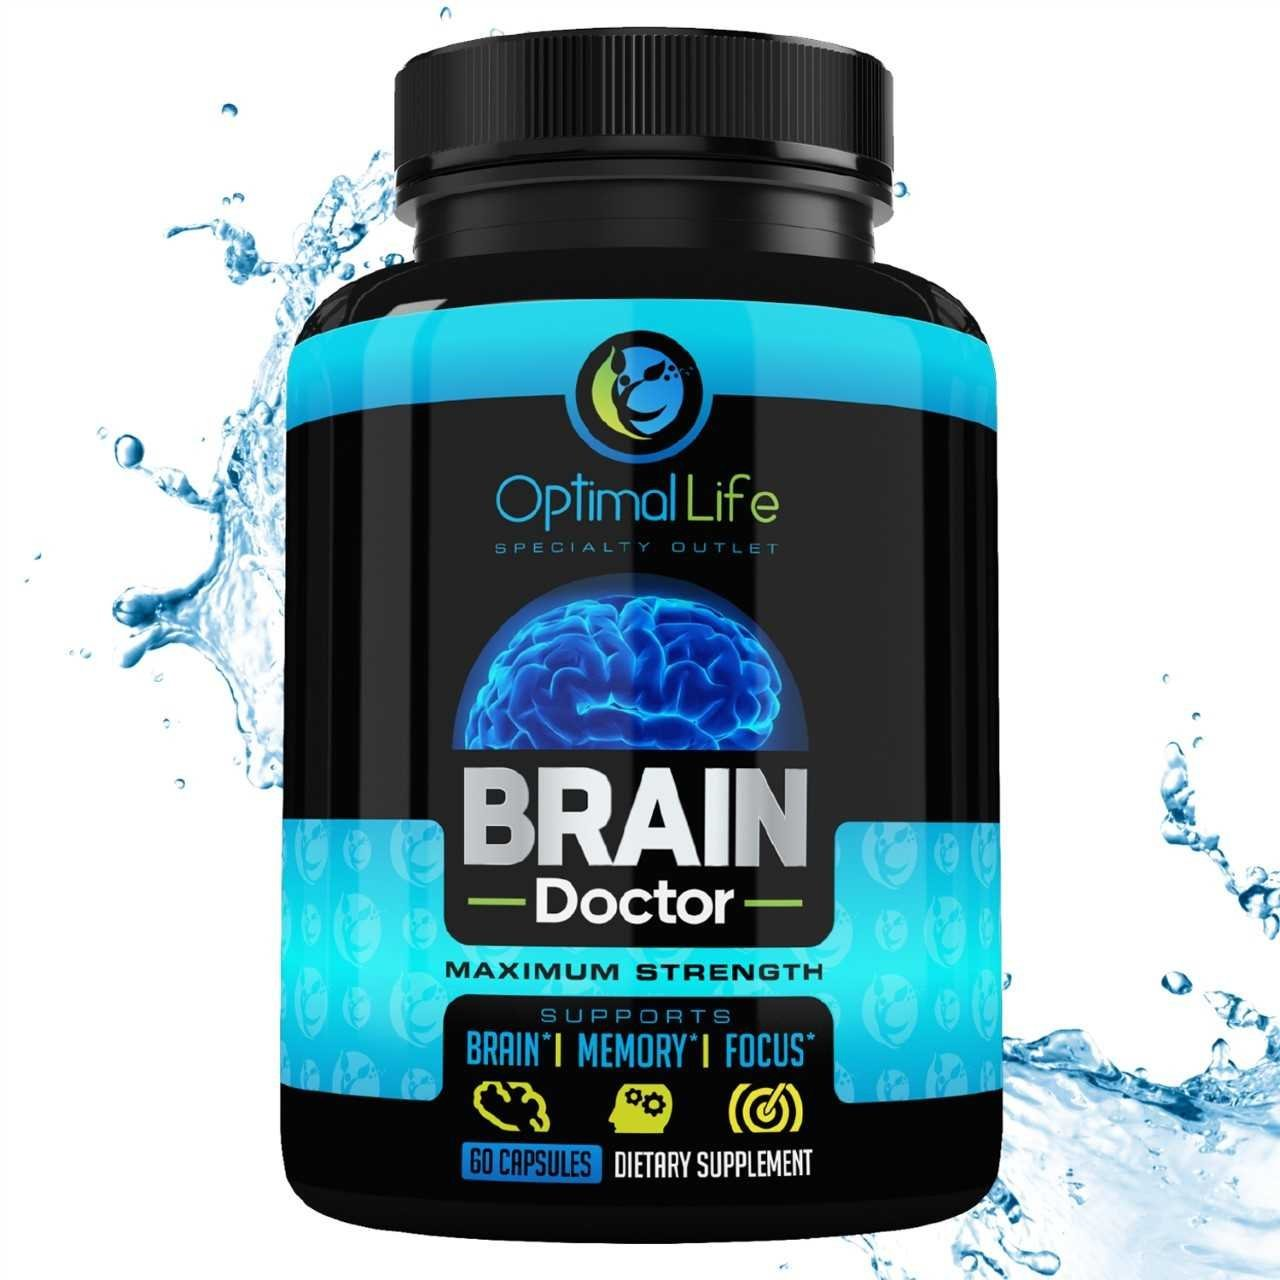 Bacopa Monnieri Capsules Brain Booster Smart Pill for Adults Increase Clarity & Energy - Healthy Extract All Natural - Enhance Mood & Awake Mind W/DMAE by Optimal Life Specialty Outlet